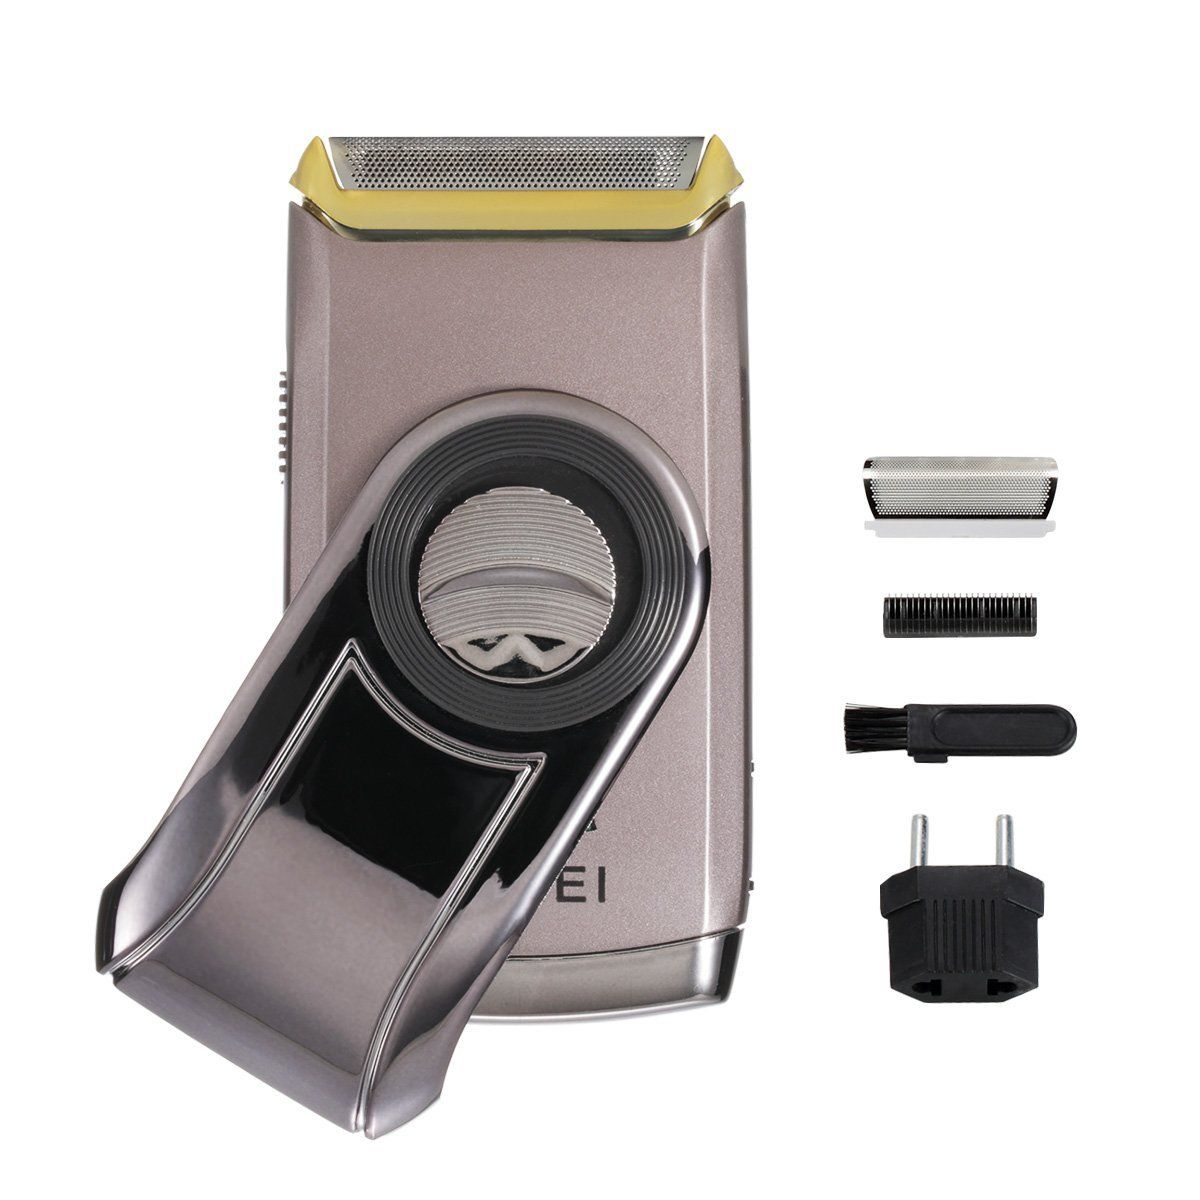 Men ShaverBienna Rechargeable Electric Wet and Dry Steel Cordless